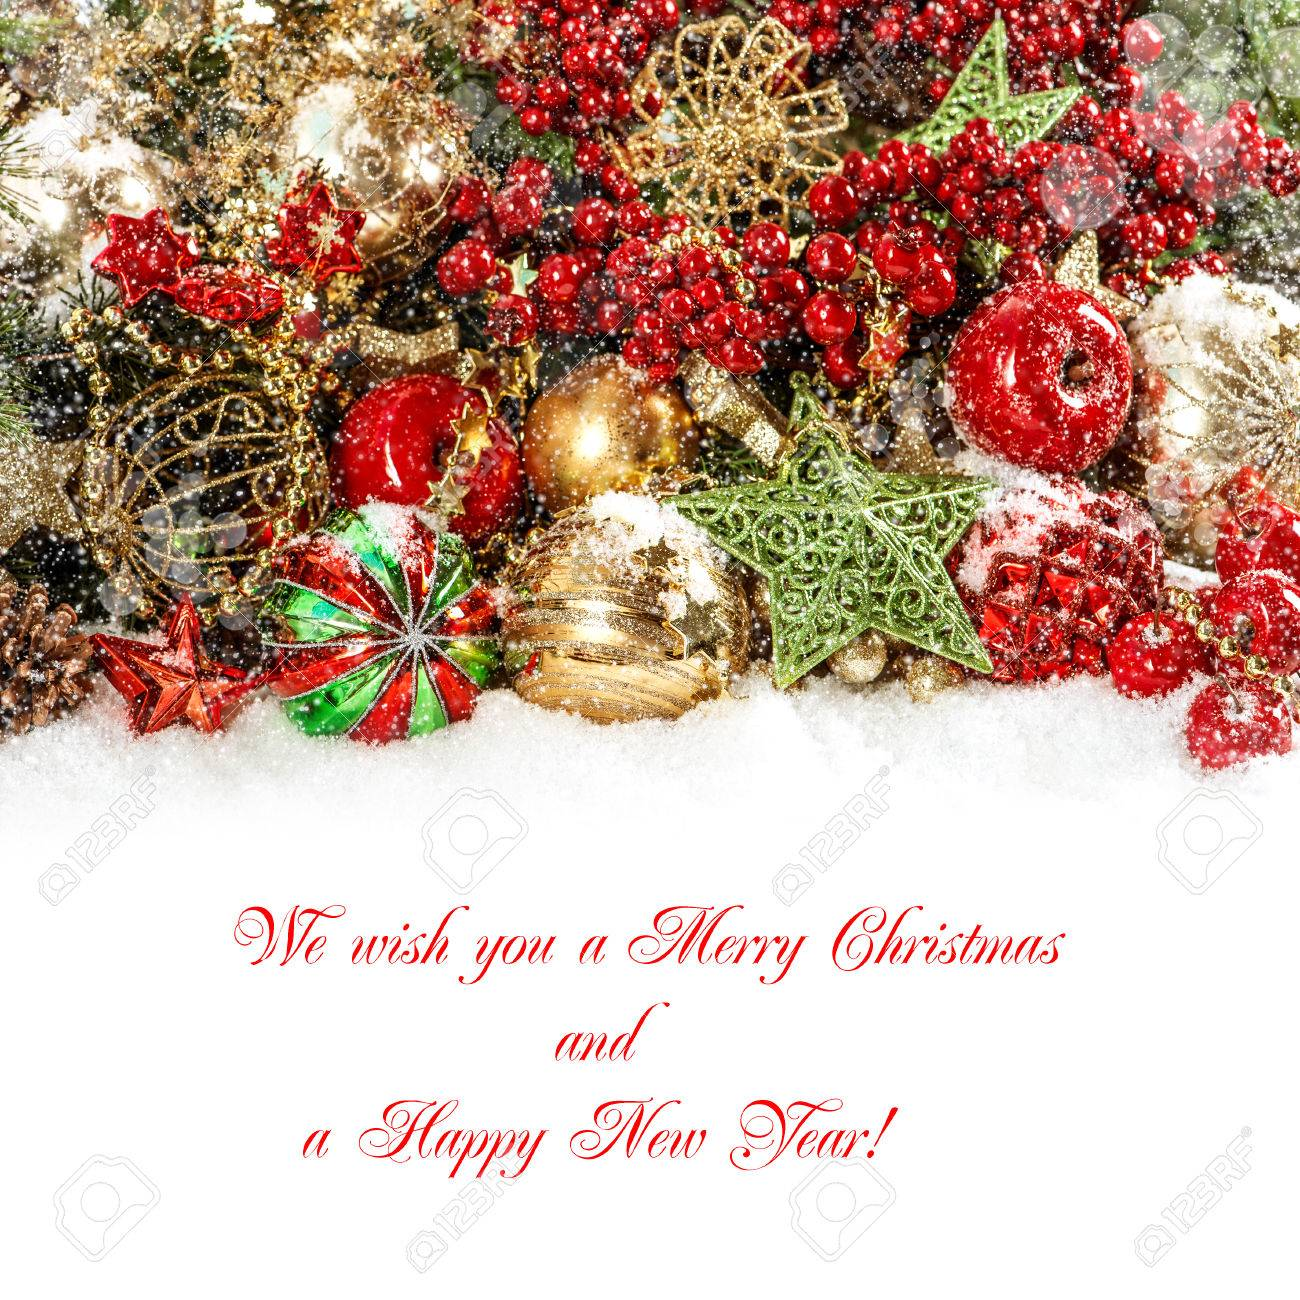 colorful christmas decorations in red gold green festive background with falling snow effect